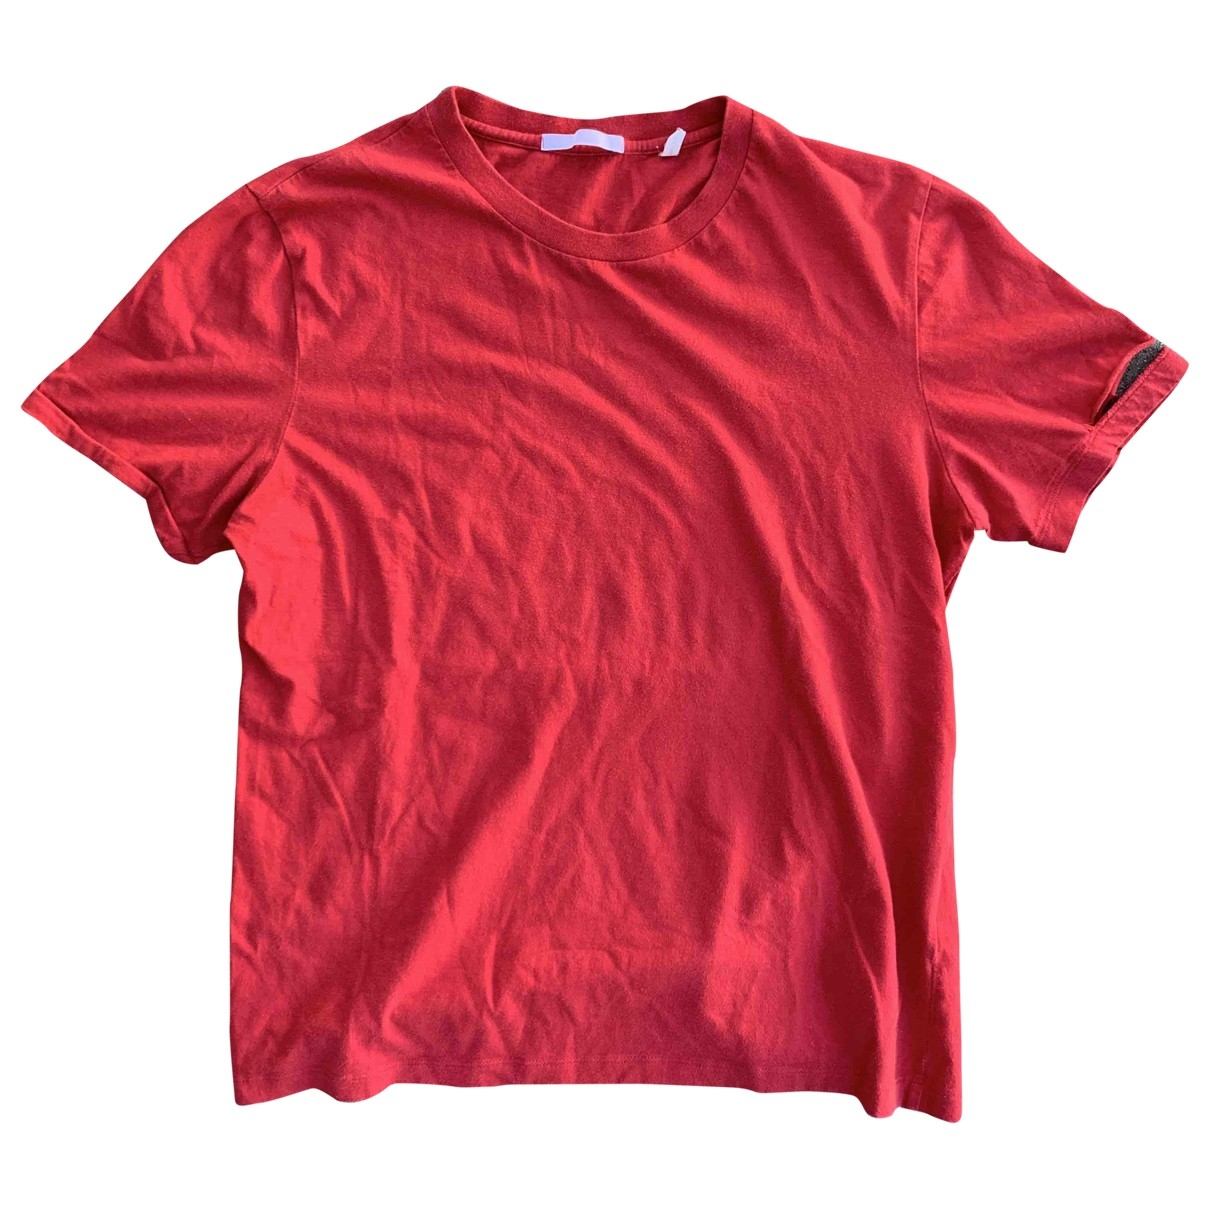 Helmut Lang \N Red Cotton  top for Women M International